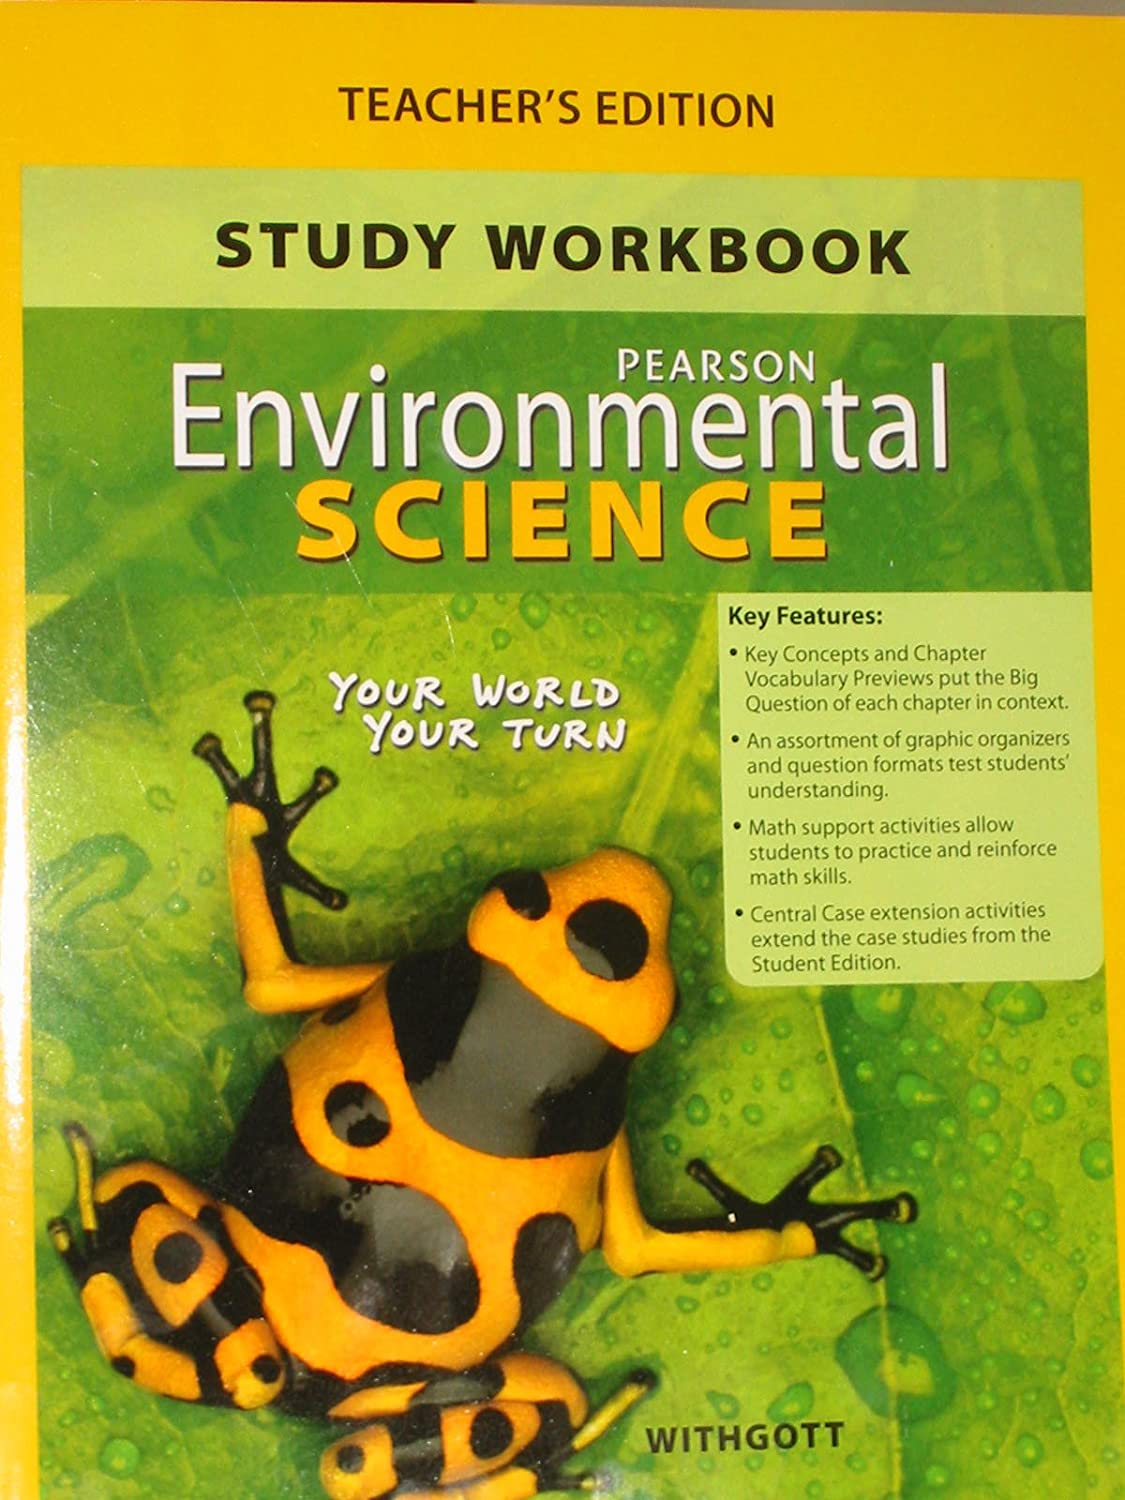 Amazon.com: Study Workbook for Environmental Science: Your World Your Turn,  Teacher's Edition: Withgott: Health & Personal Care